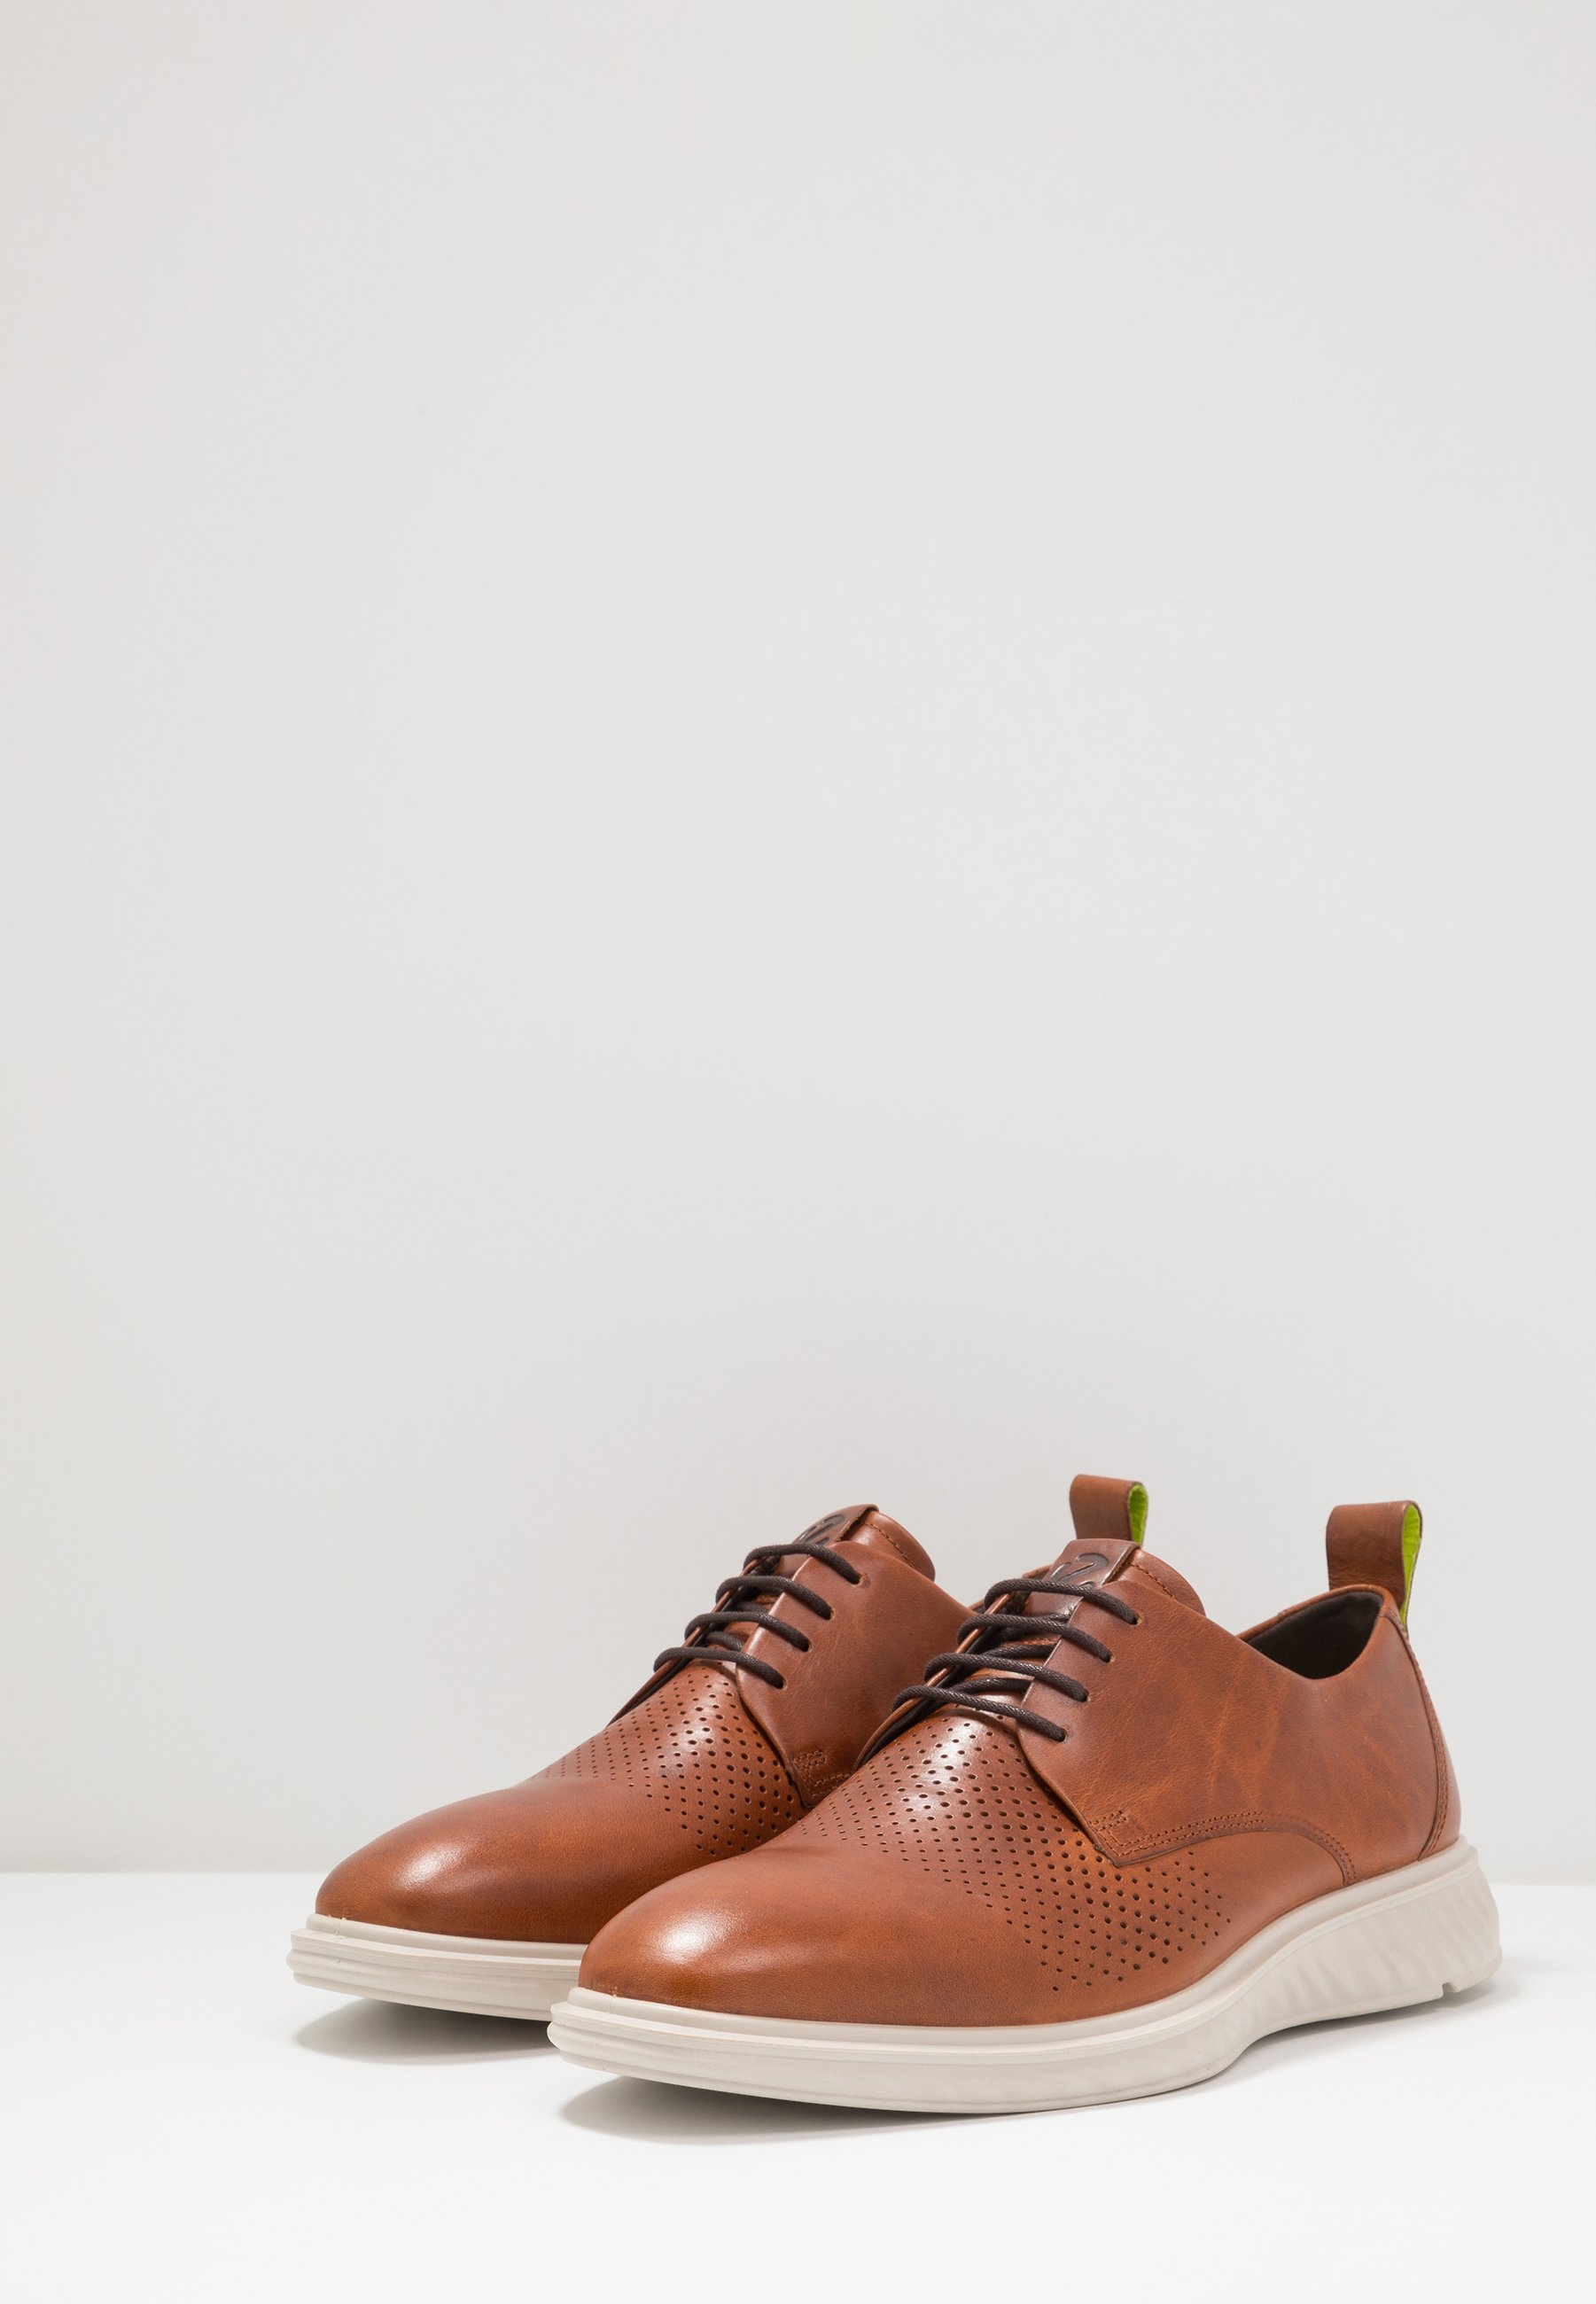 2013 Cheapest ECCO ST.1 HYBRID LITE - Casual lace-ups - amber | men's shoes 2020 N336d